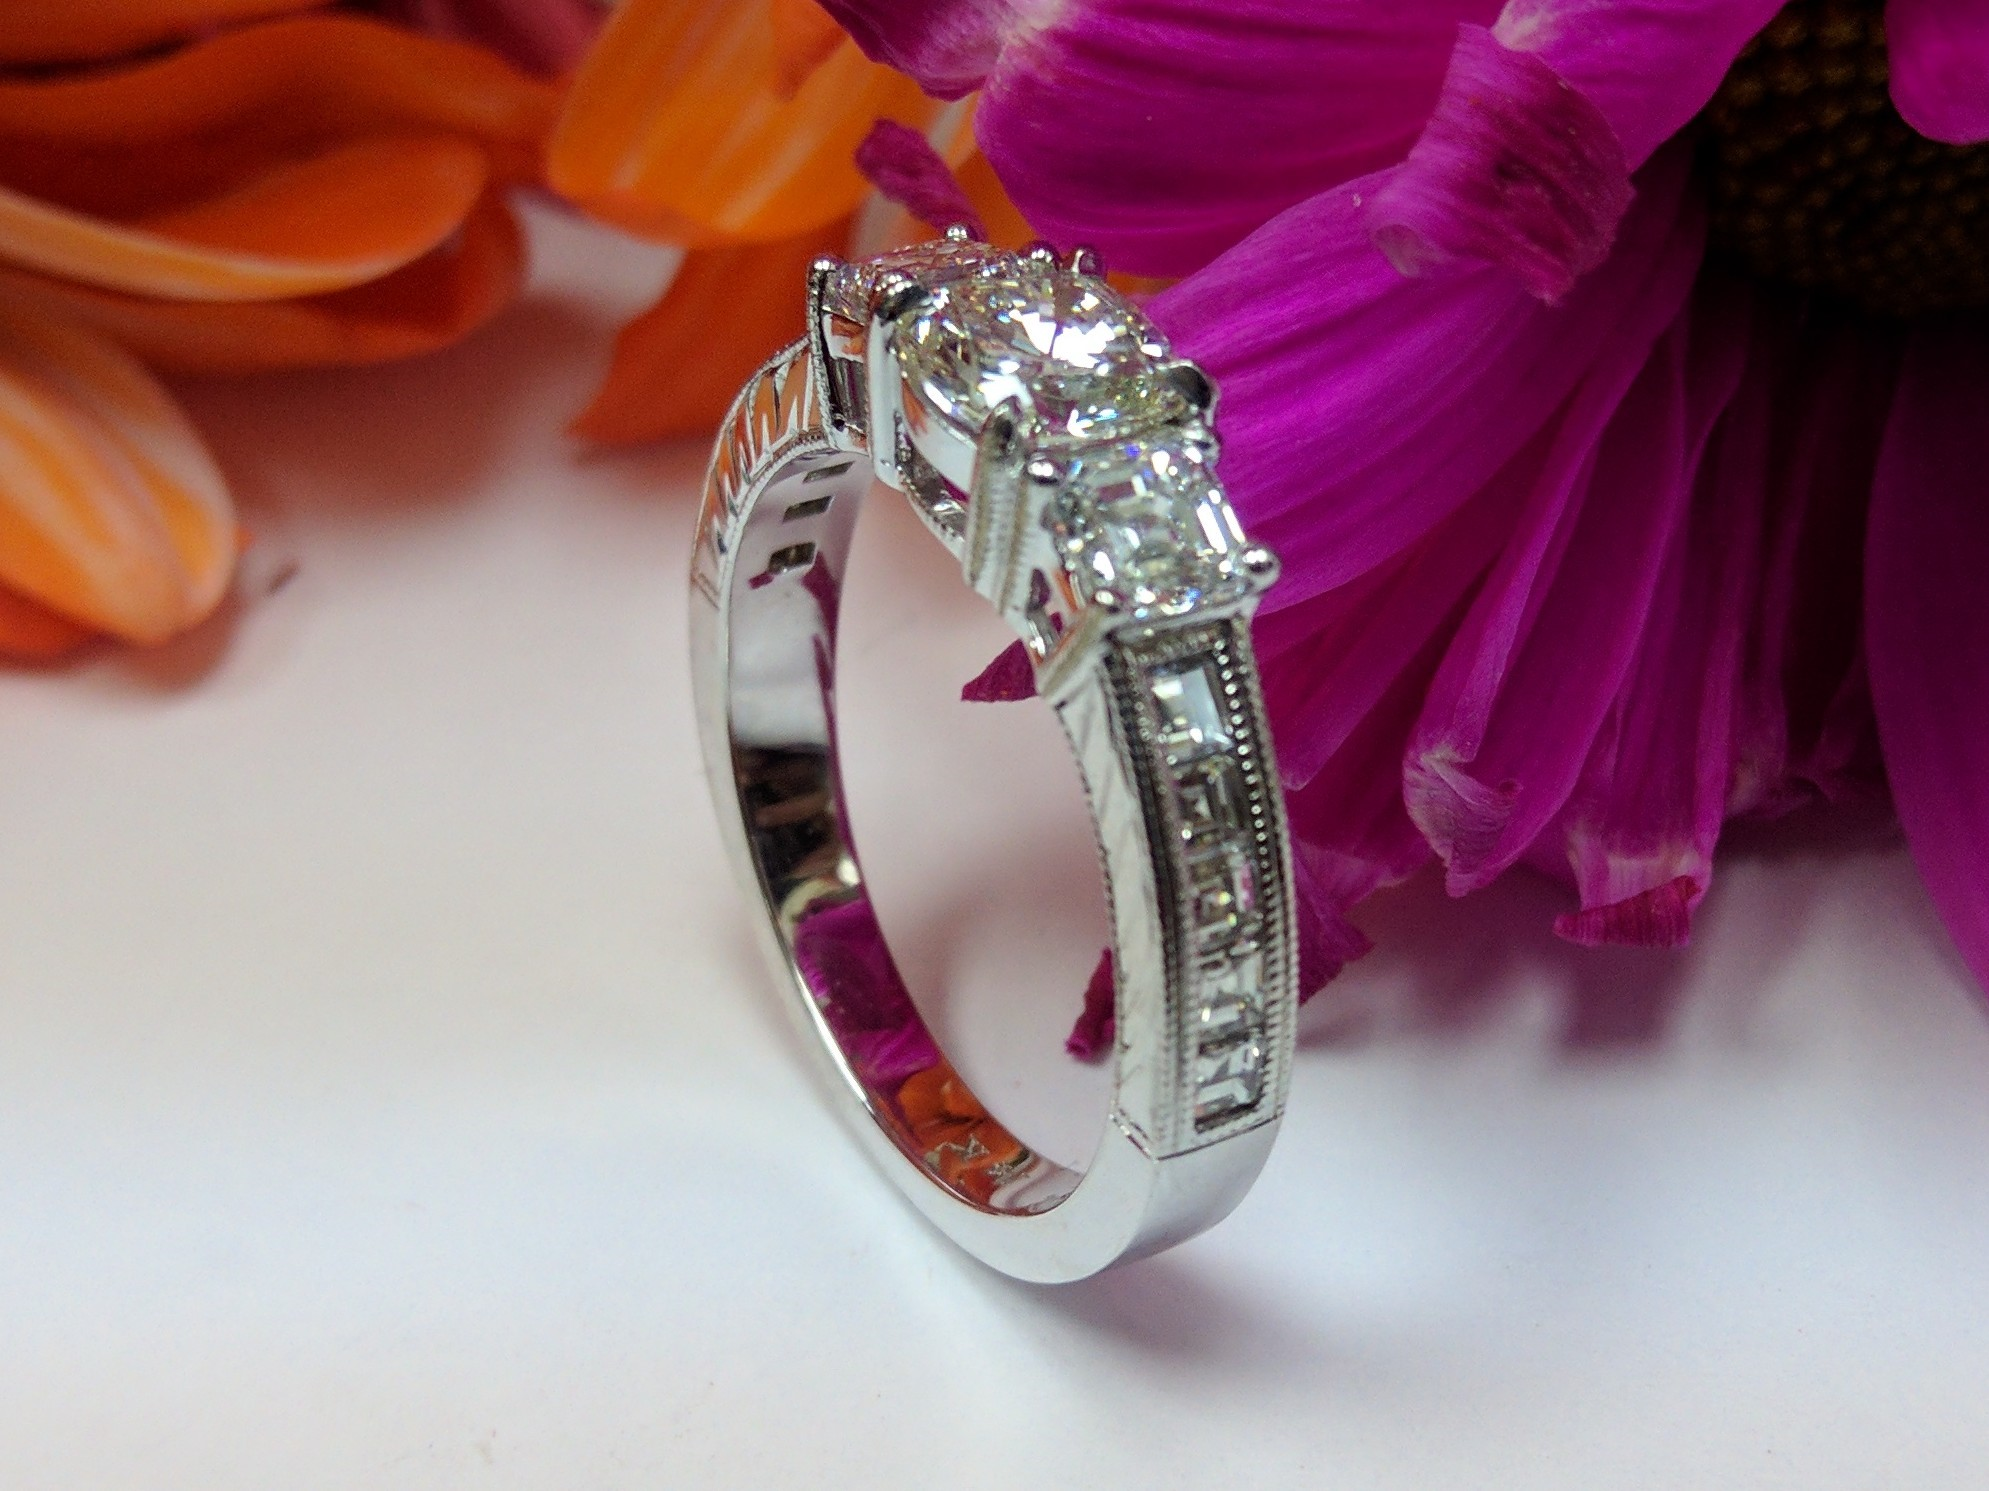 Vintage Three Stone Cushion - Asscher Diamond Engagement Ring, Engraved Band